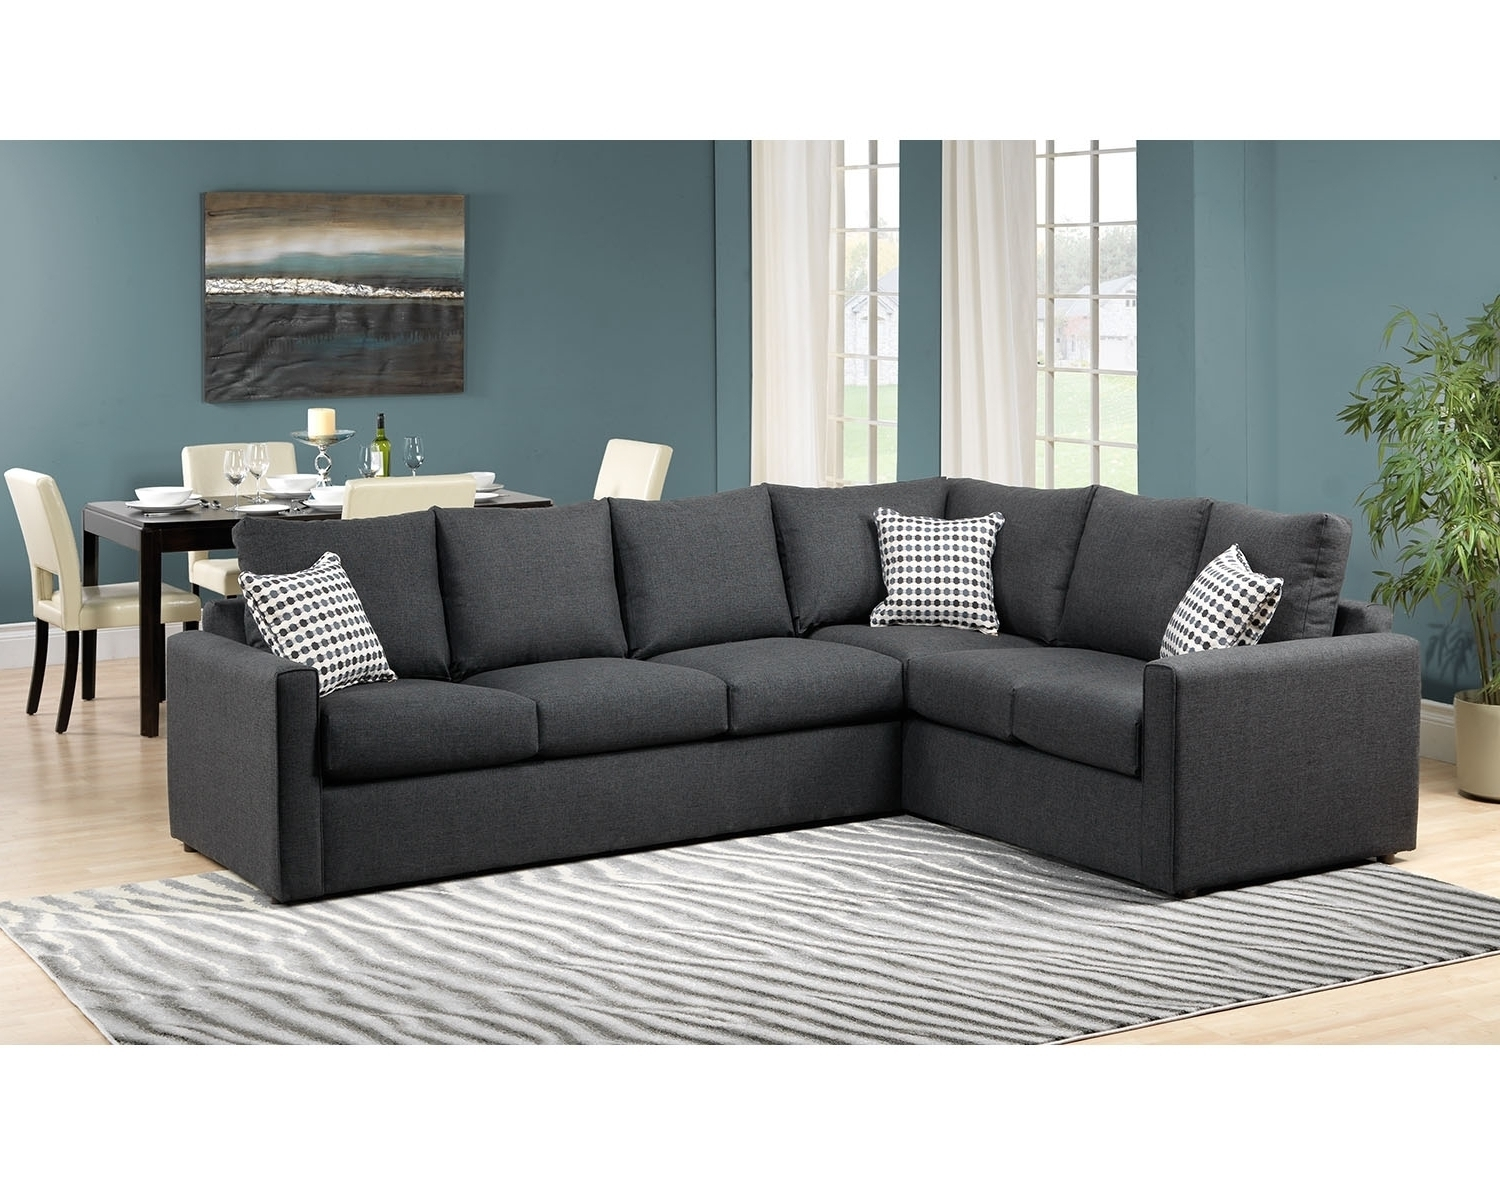 Most Current Leons Sectional Sofas Pertaining To Leons Sofa Bed Sectional (View 10 of 15)